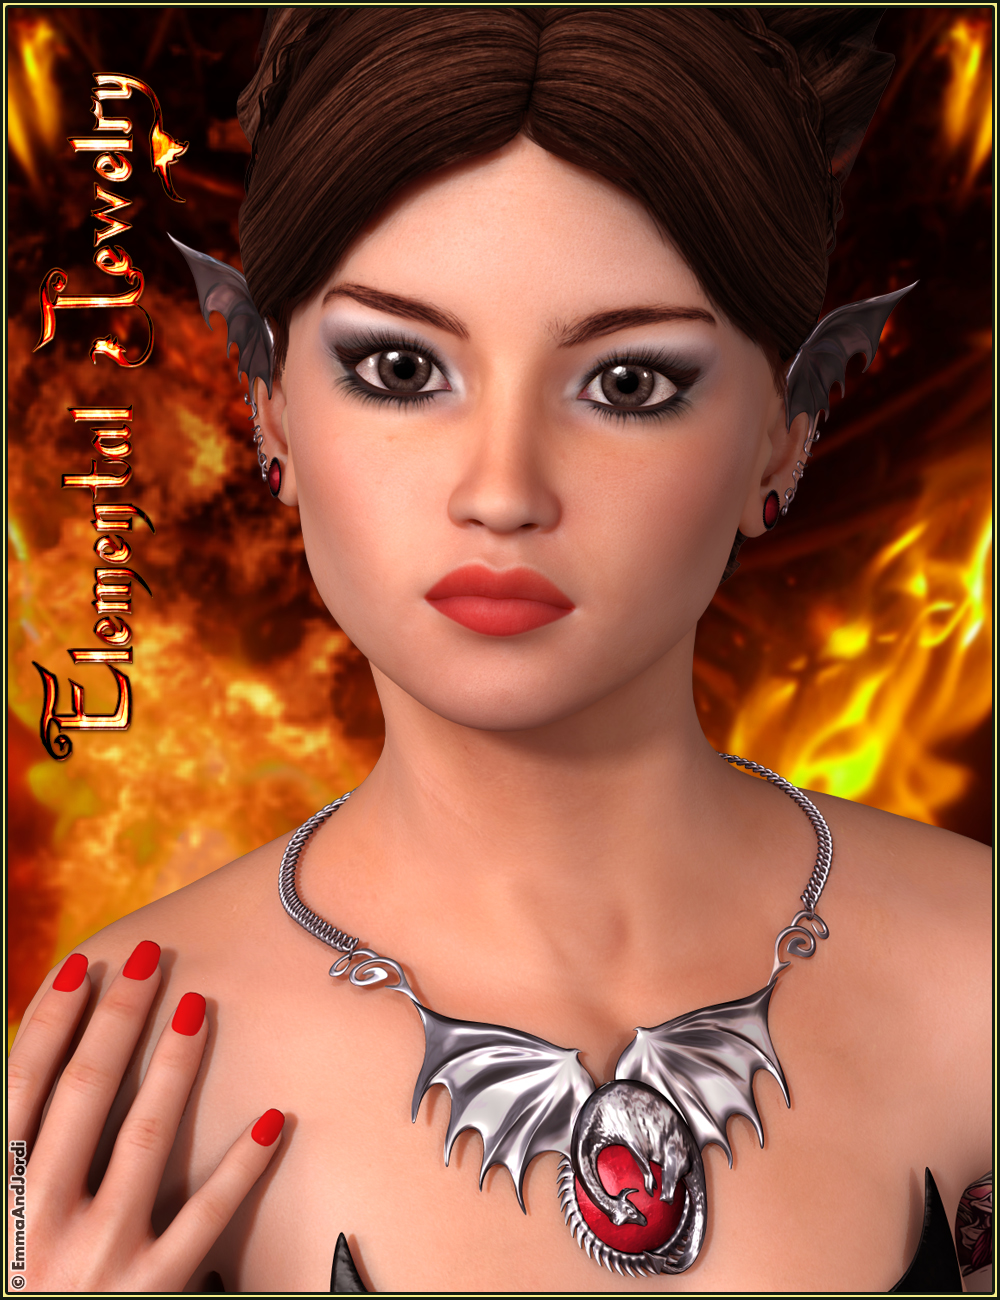 Elemental Jewelry: Fire, Earth, Wind, and Water by: EmmaAndJordi, 3D Models by Daz 3D